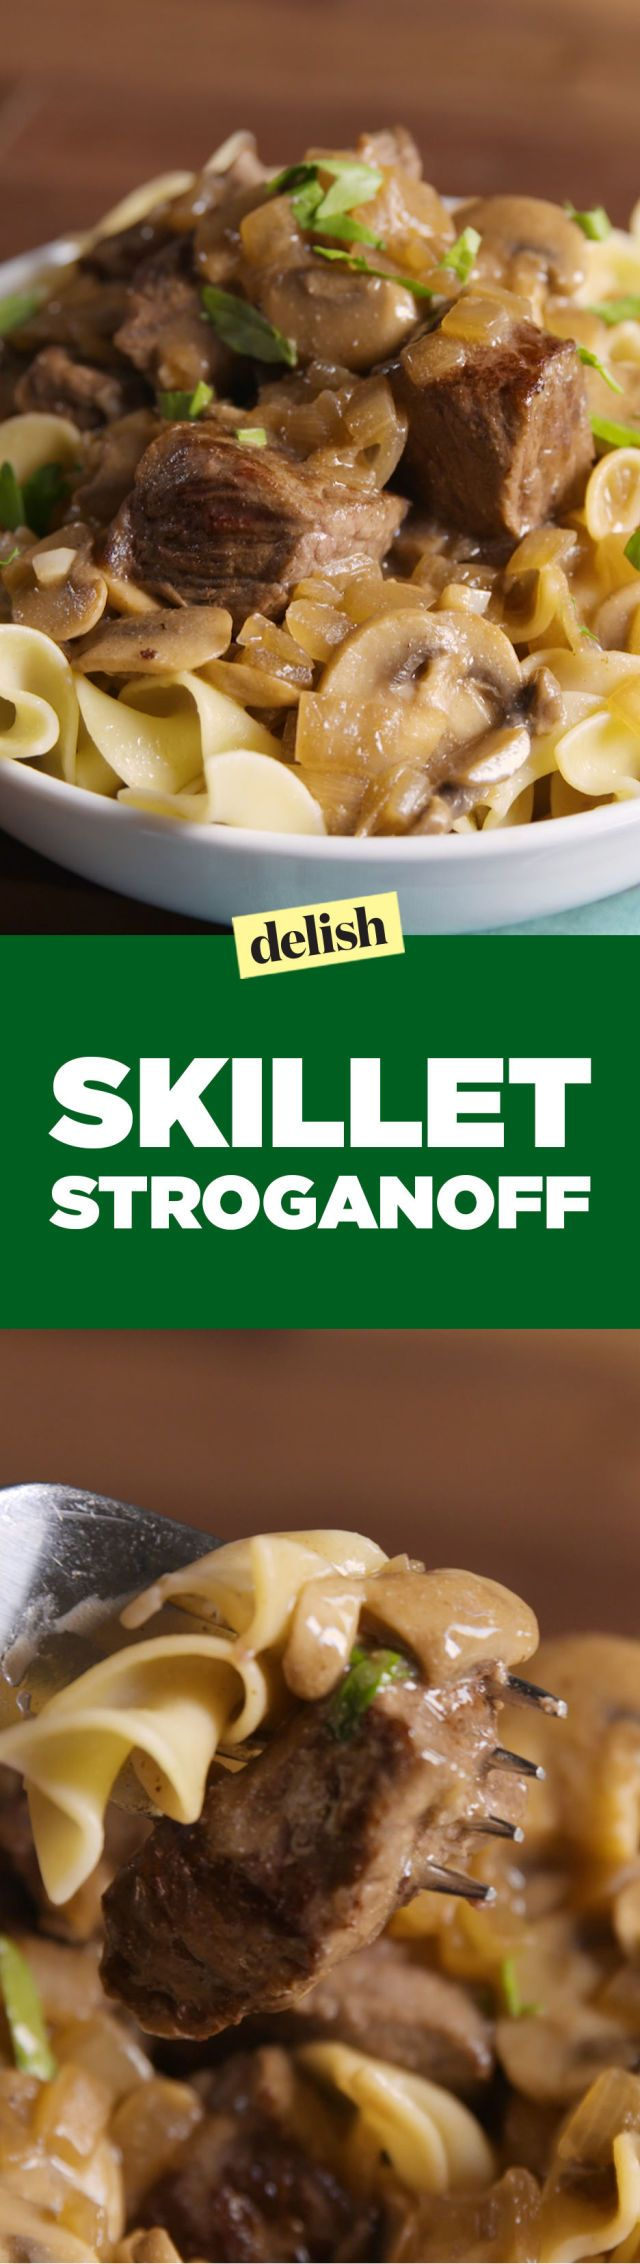 http://www.delish.com/cooking/recipe-ideas/recipes/a49556/skillet-beef-stroganoff-recipe/